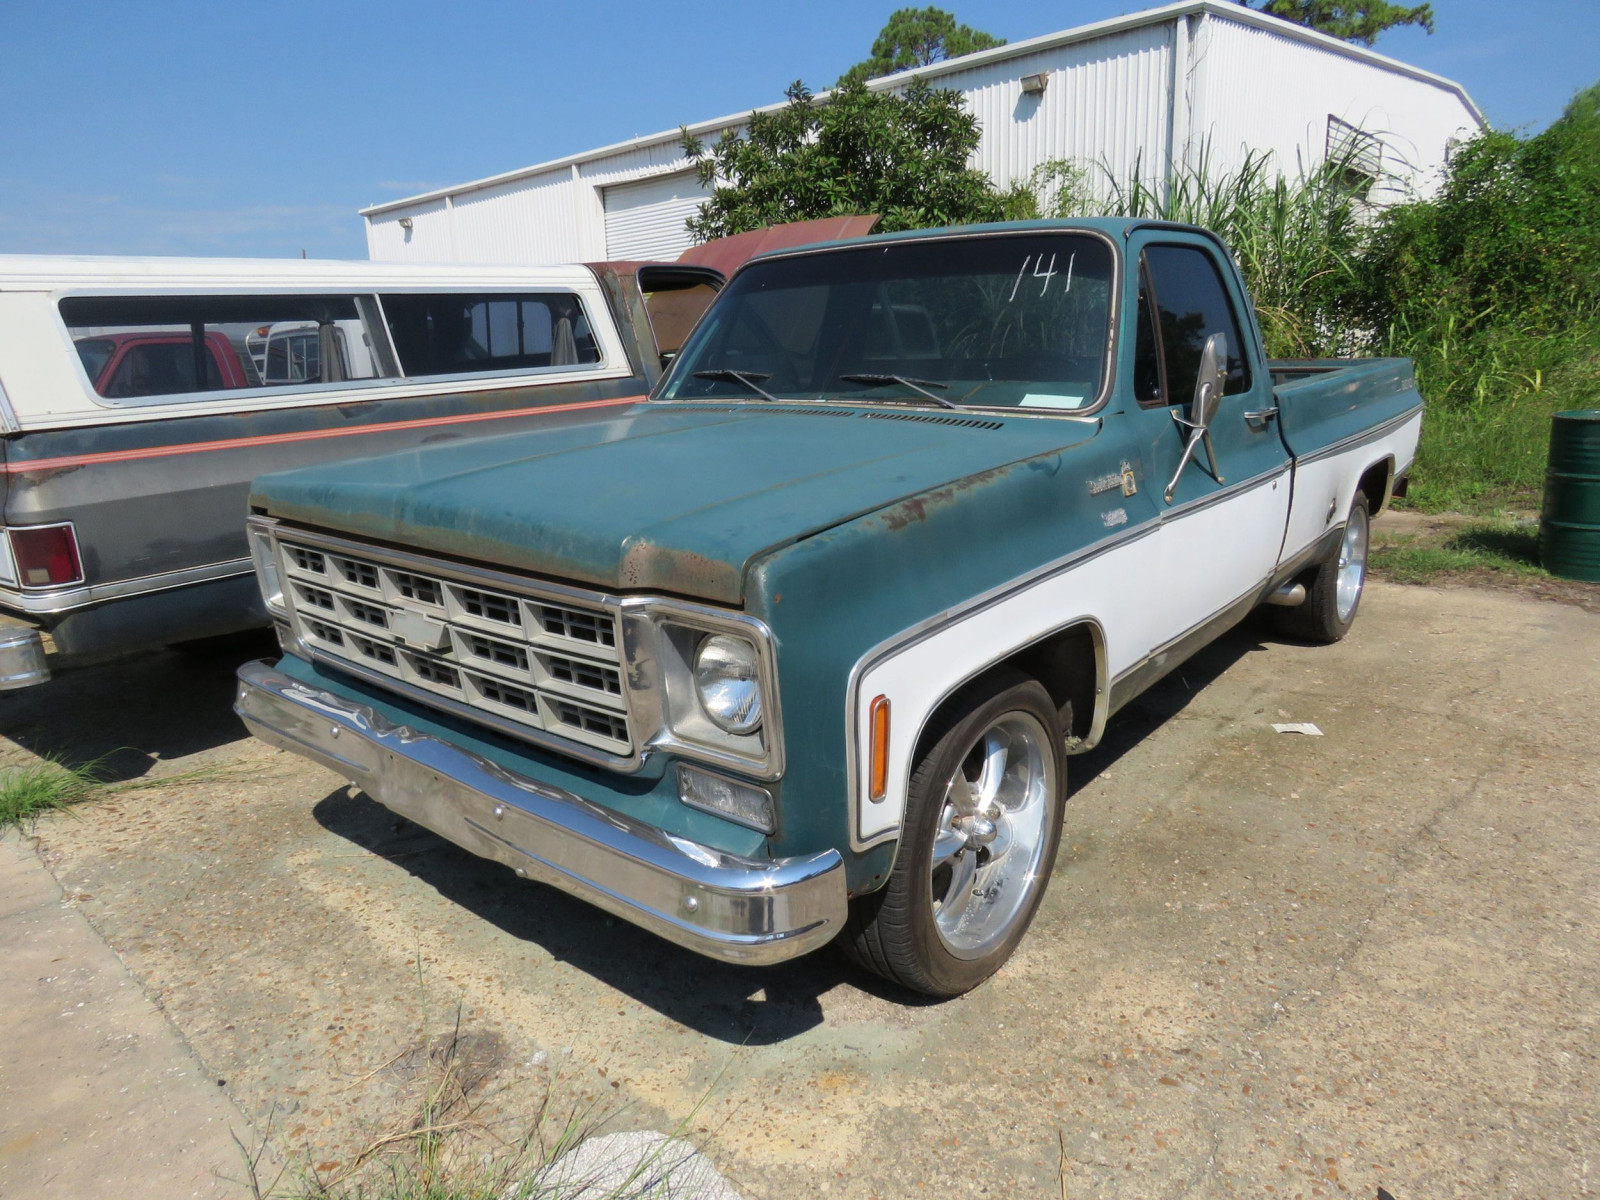 1979 Chevrolet Big 10 1/2 ton Pickup - Image 1